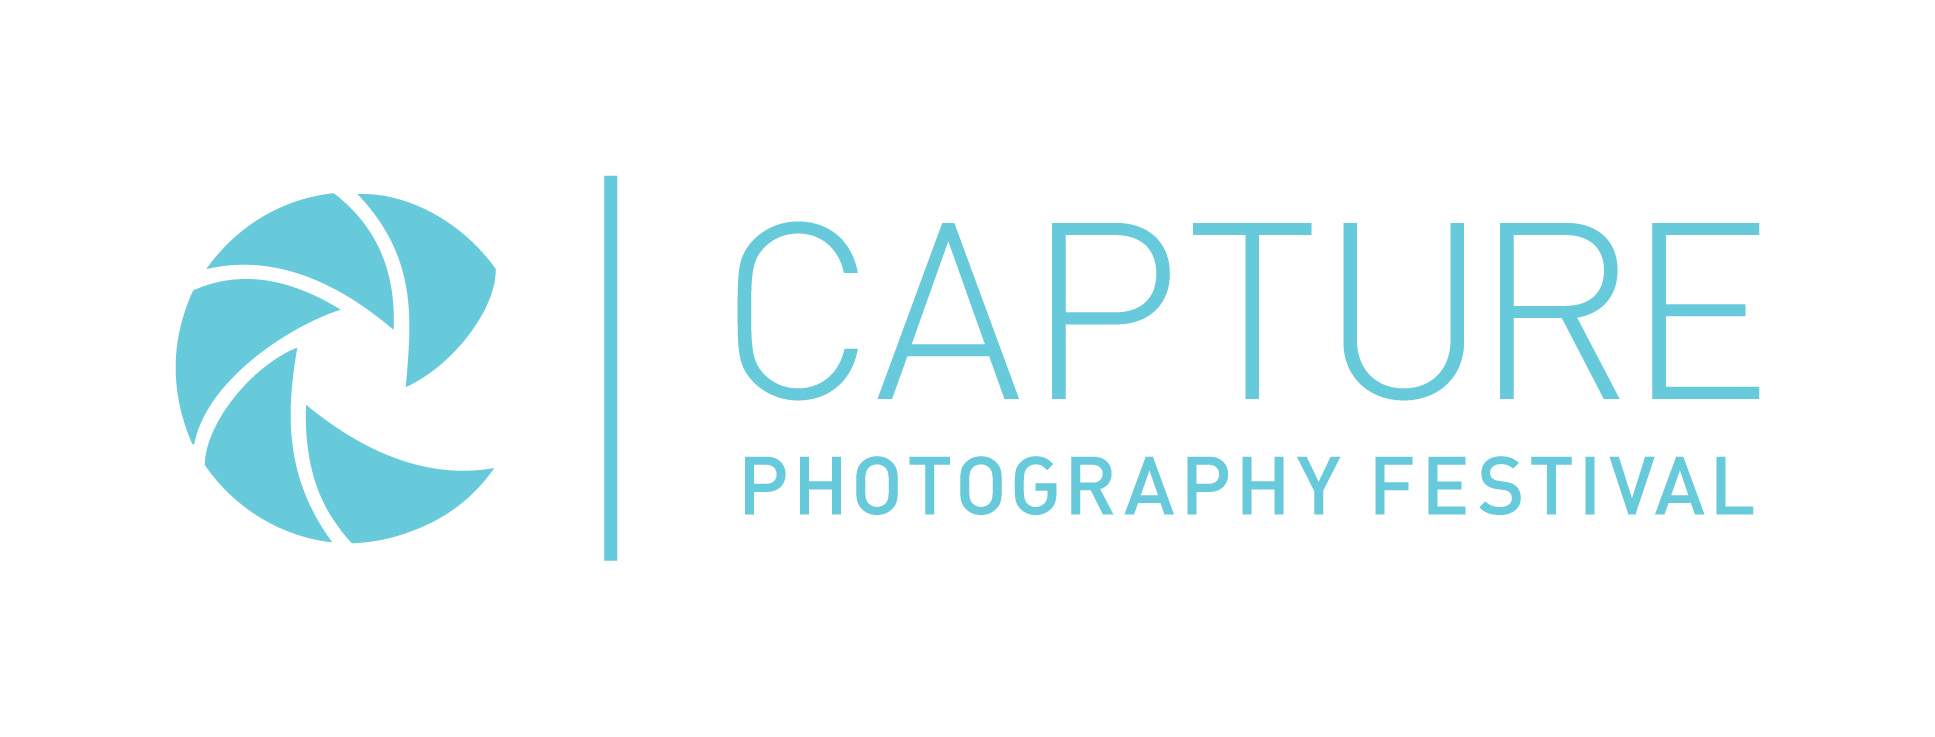 1-capture-photography-festival